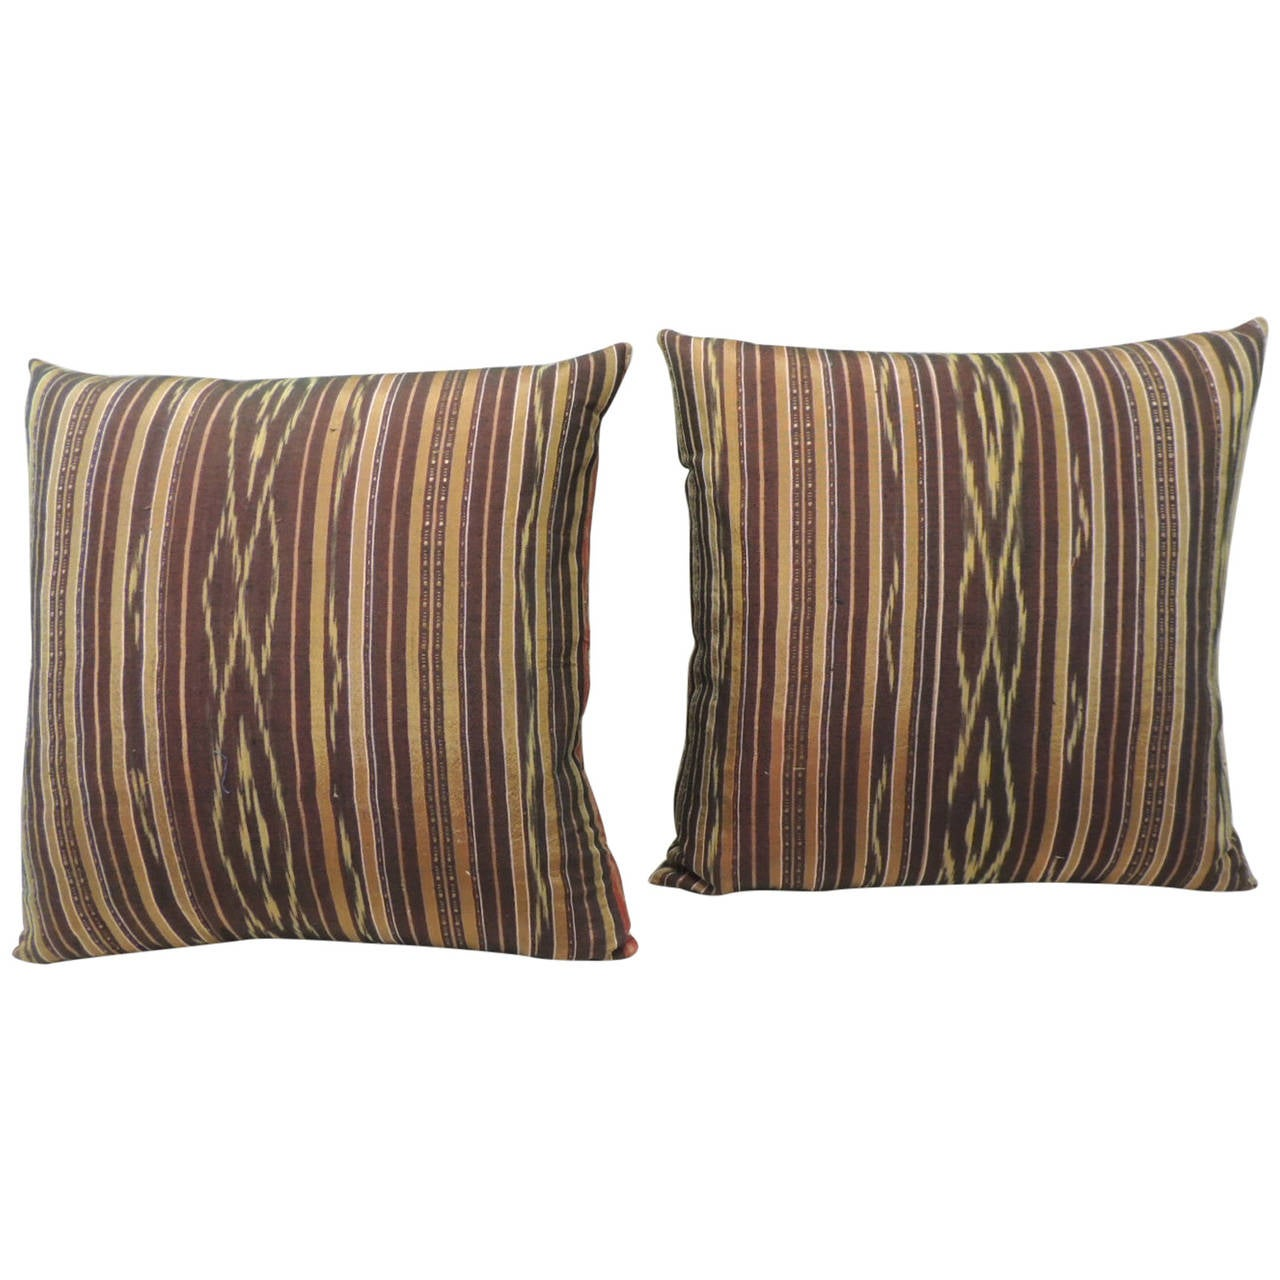 Yellow Silk Decorative Pillows : Pair of Vintage Red and Yellow Silk Laos Decorative Pillows For Sale at 1stdibs